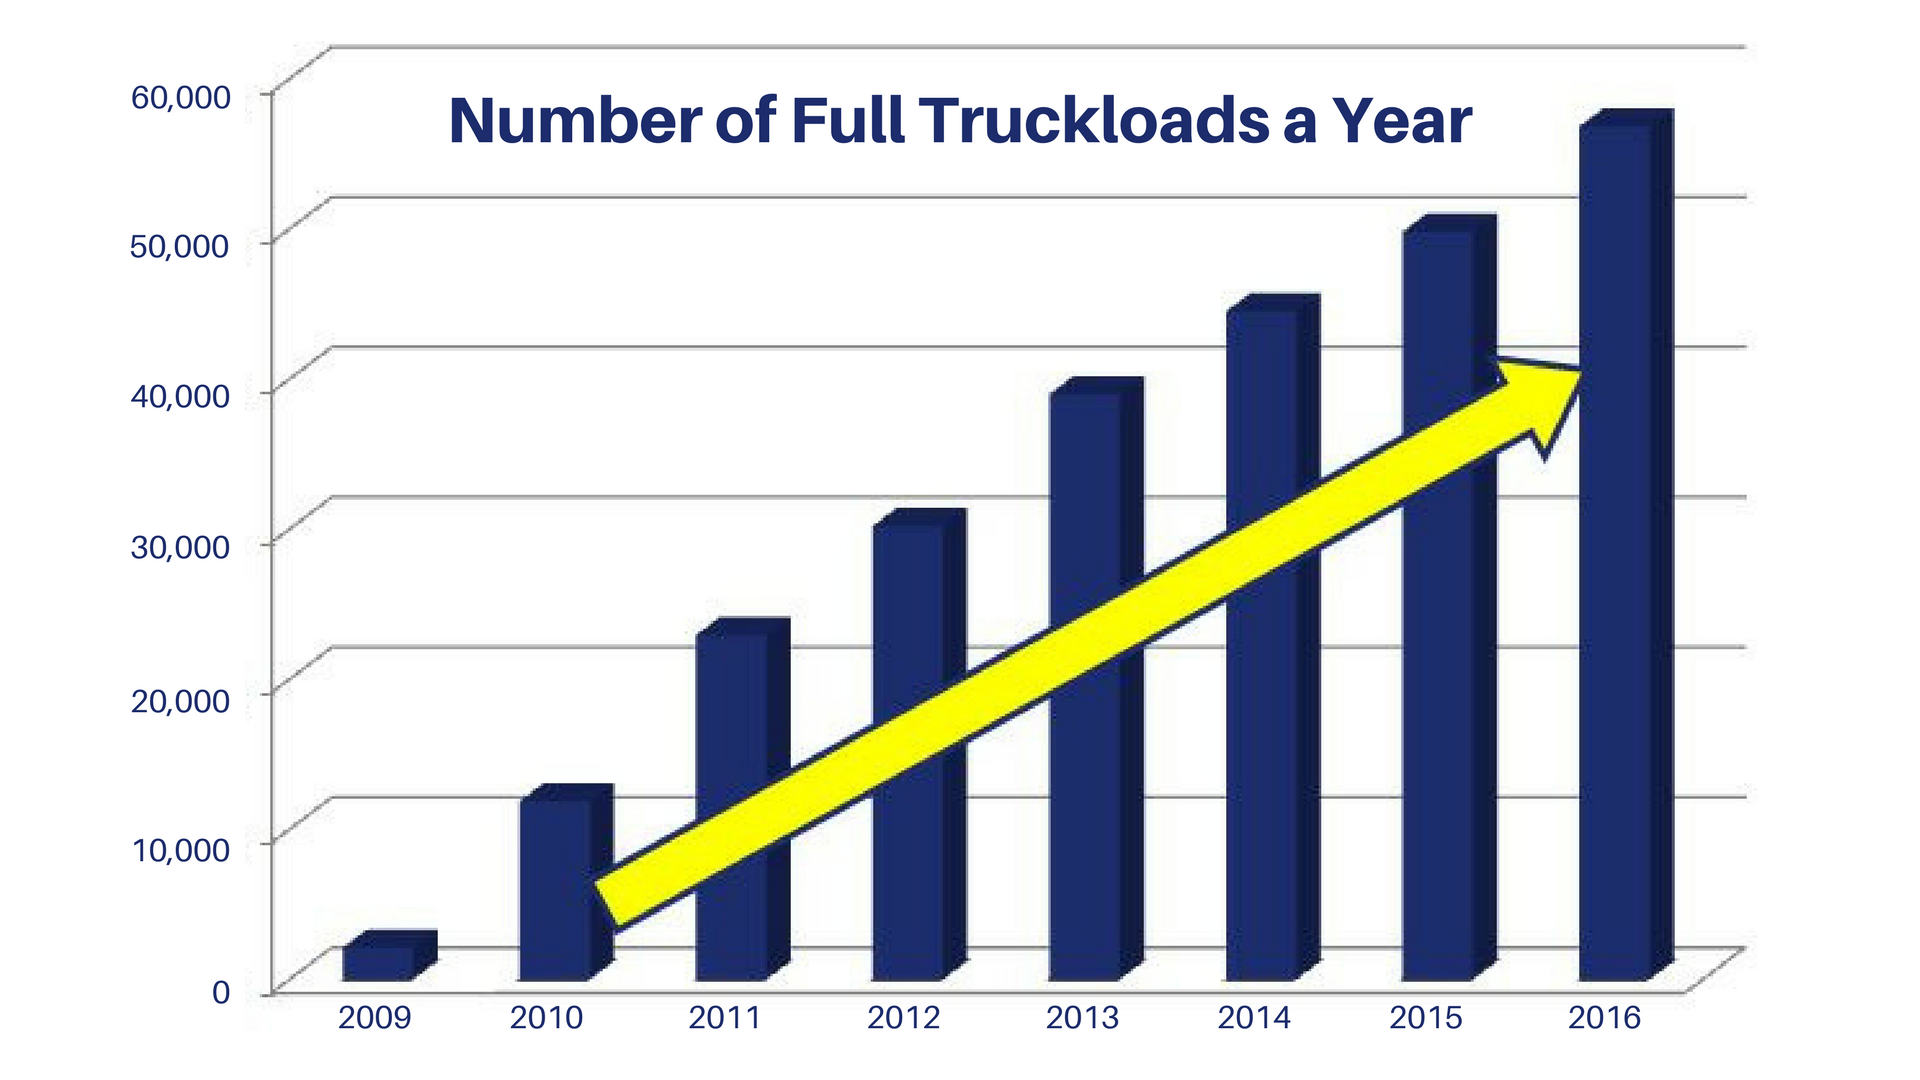 A bar graph depicting the Number of Full Truckloads a Year. The graph starts very low in 2009, incrementally rising to about 55,000 in 2016.